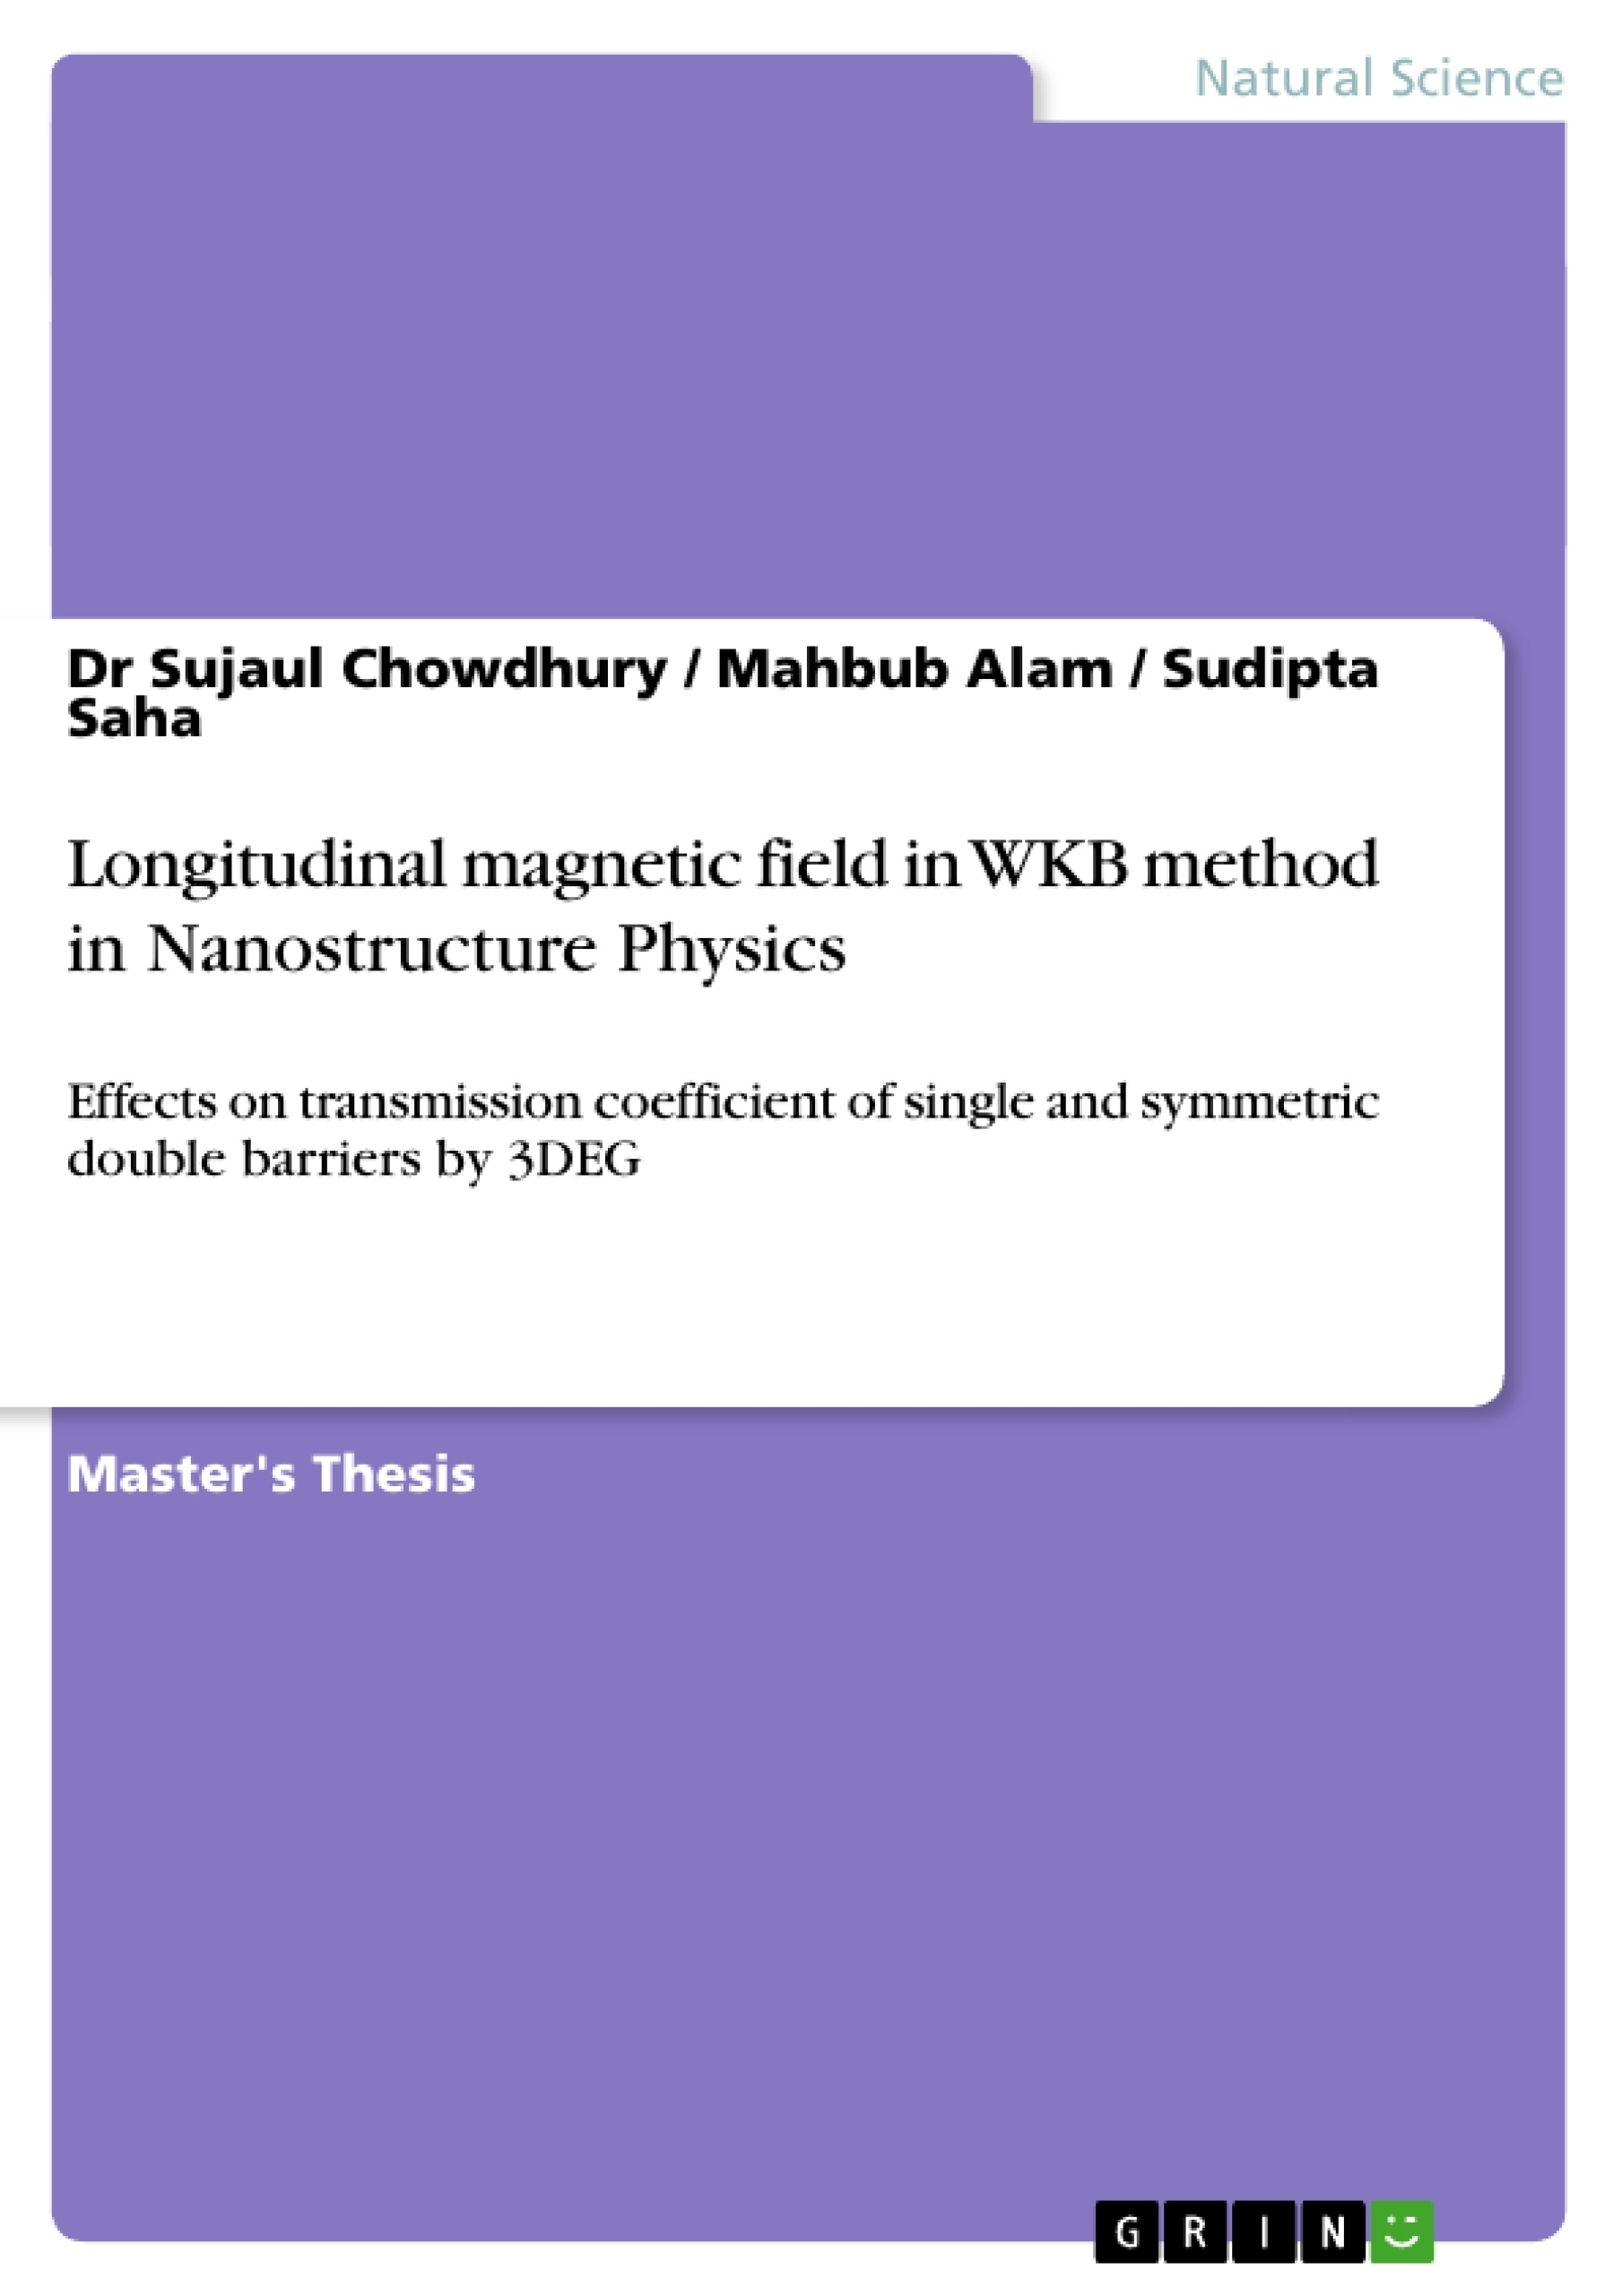 Title: Longitudinal Magnetic Field in WKB Method in Nanostructure Physics